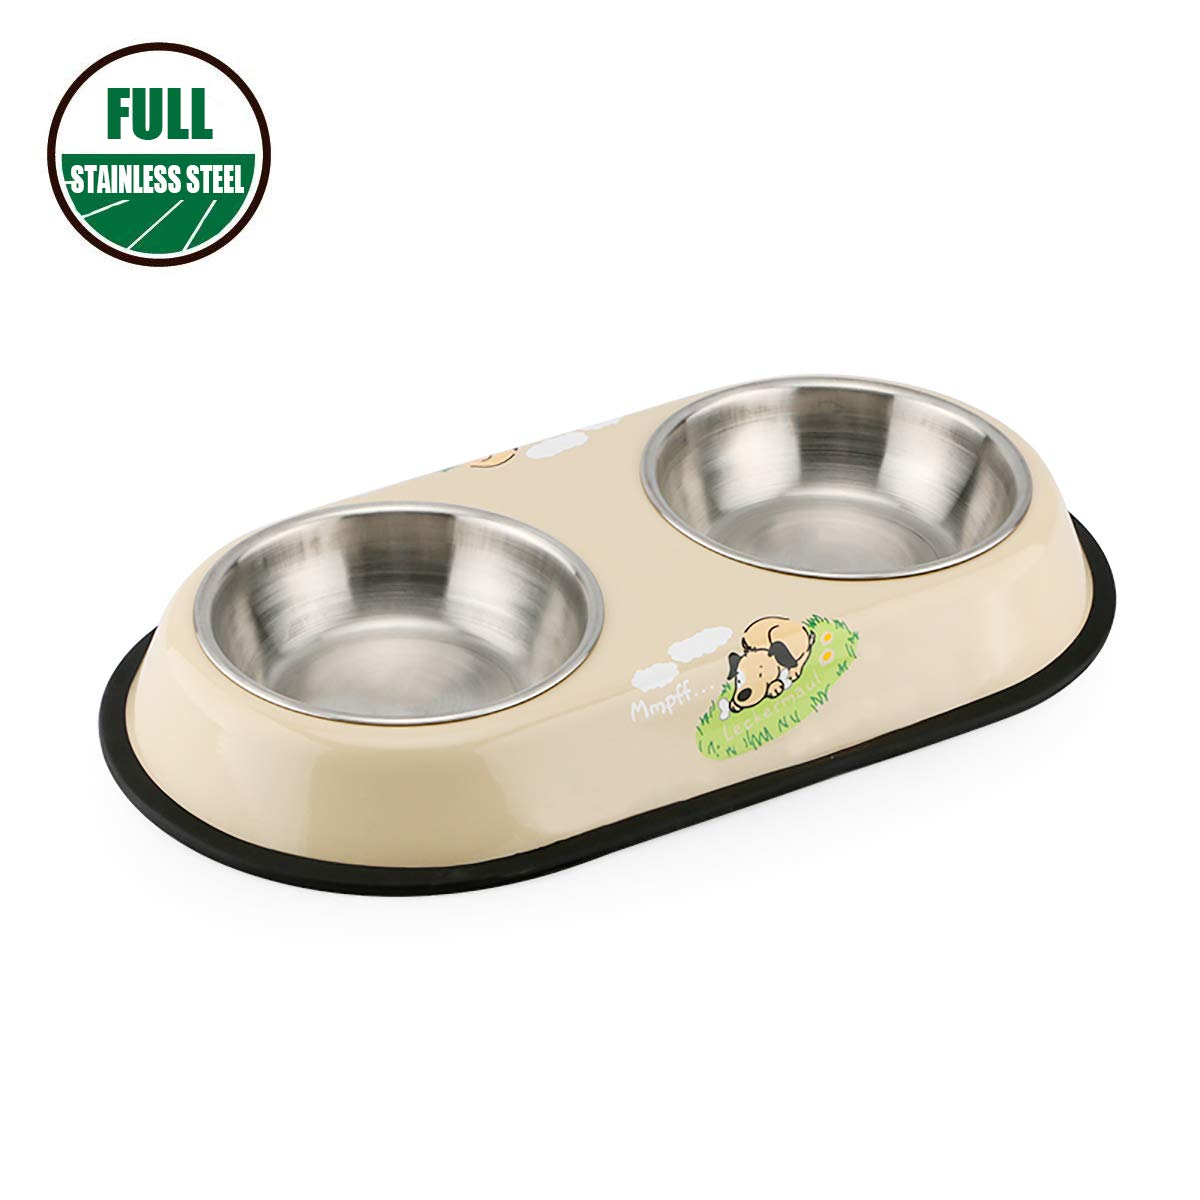 Beige Dog Bowls Double Dog Food Water Bowl and Cat Bowl Set with Sturdy Full Stainless Steel Stand and Non-Skid Rubber Base 16 oz Pet Bowls for Small to Medium Dogs Cats Rabbits and Pets (Beige)